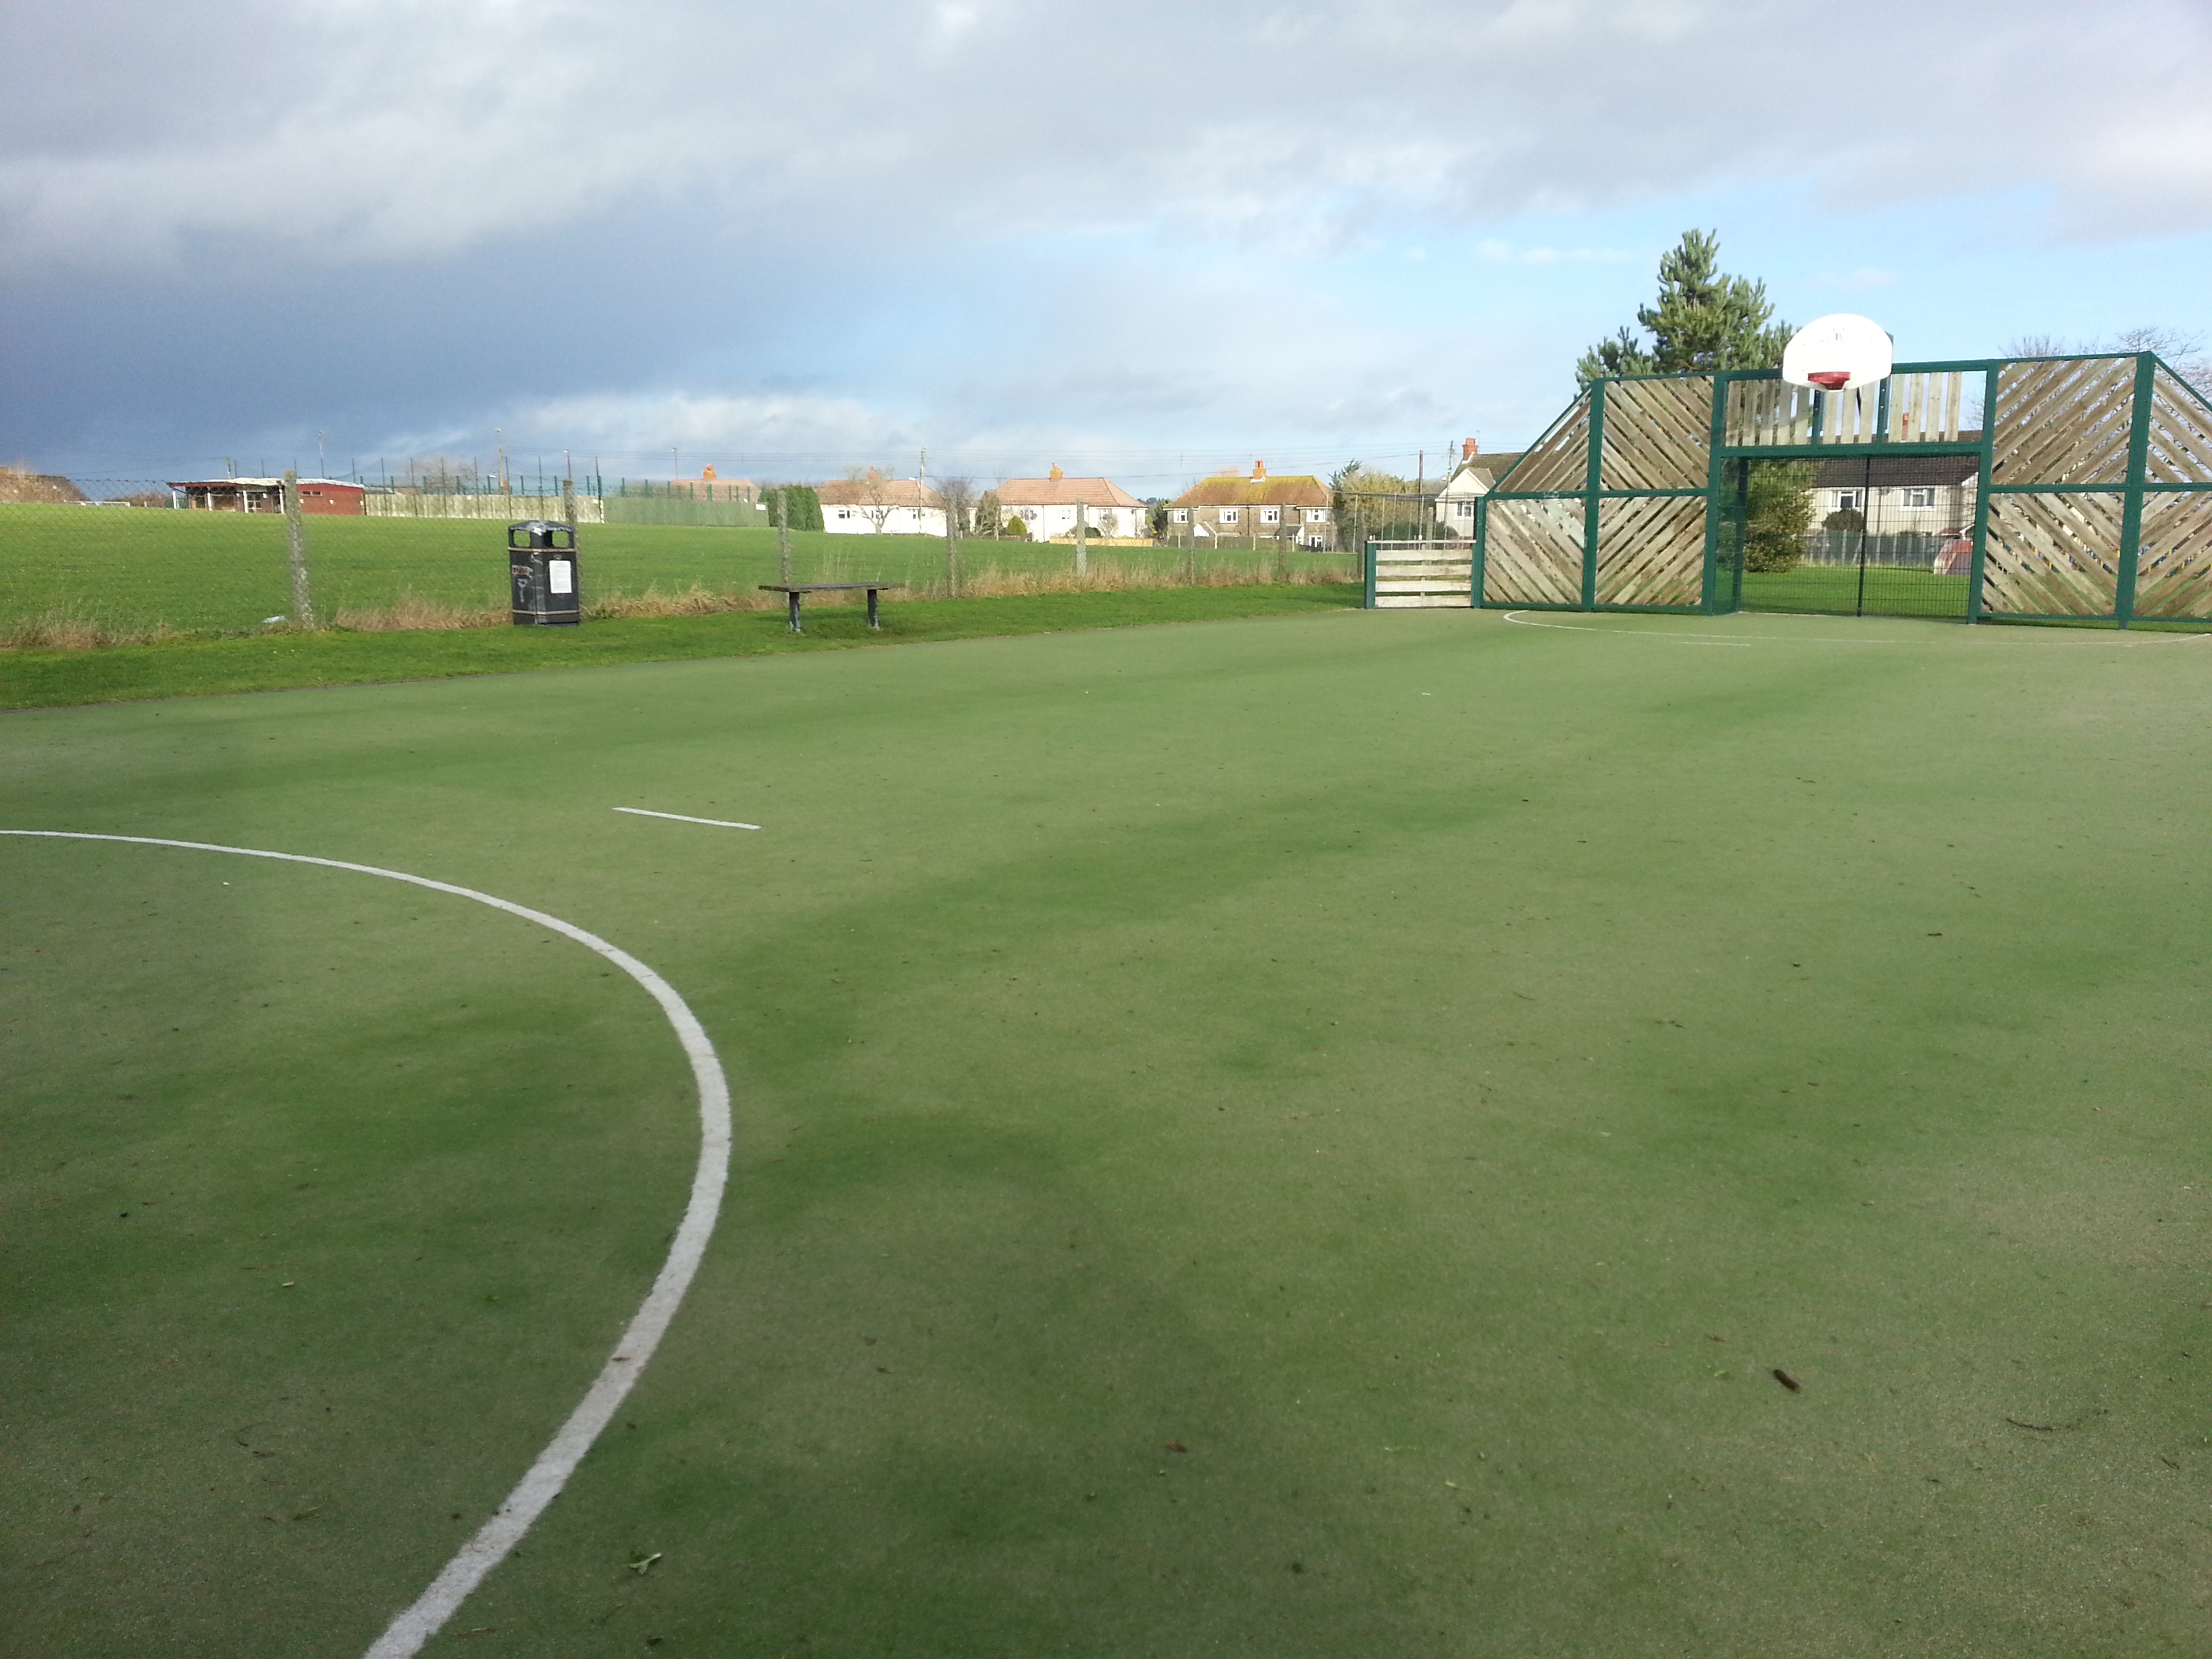 synthetic sports carpets and MUGA at Tisbury